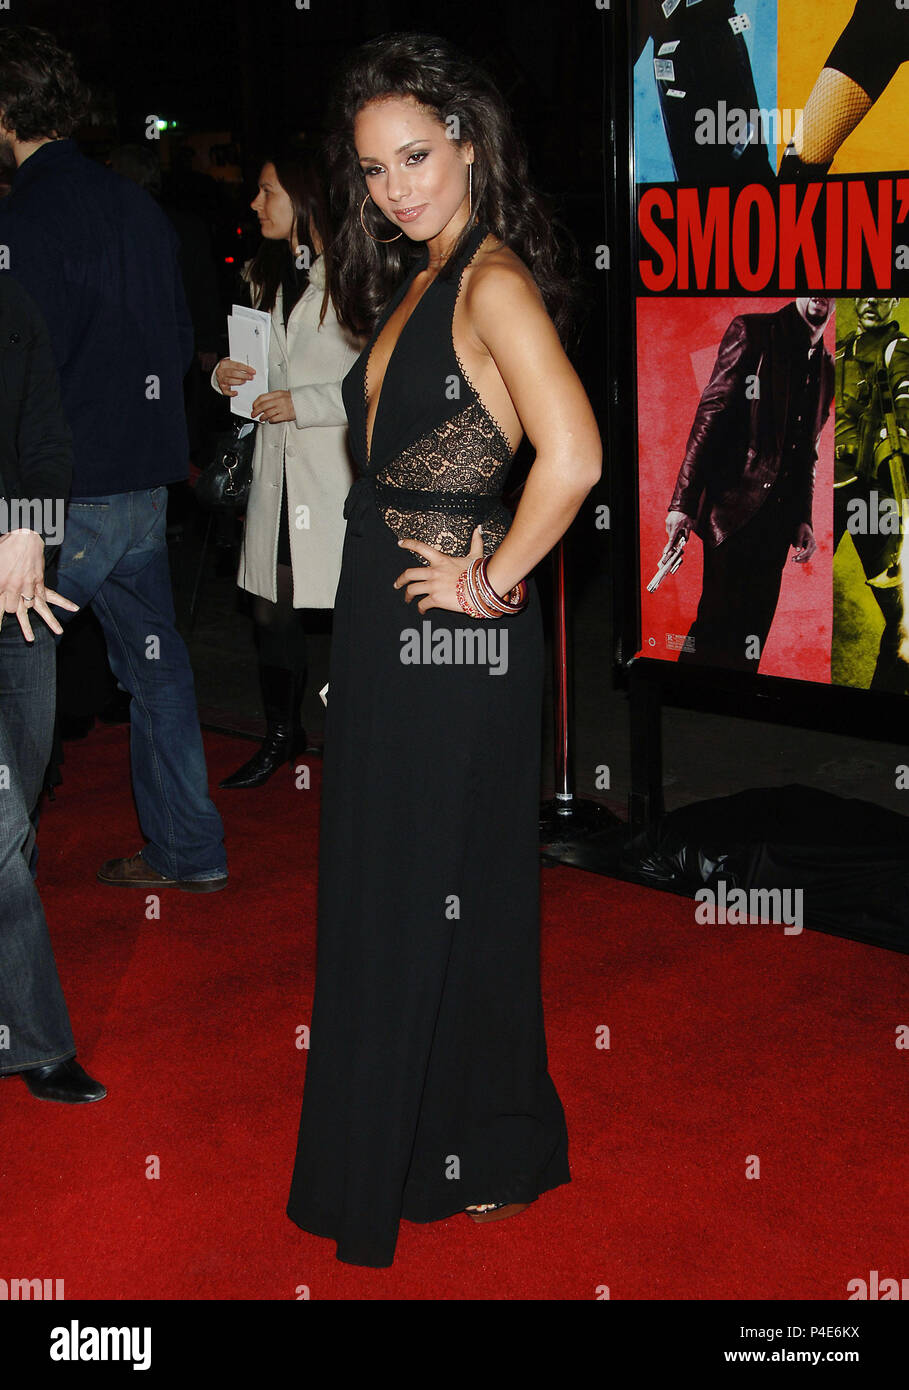 Alicia Keys arriving at the Smokin' Aces at the Chinese Theatre In Los Angeles. January 18, 2007.  smile full length black dress side view03_KeysAlicia035 Red Carpet Event, Vertical, USA, Film Industry, Celebrities,  Photography, Bestof, Arts Culture and Entertainment, Topix Celebrities fashion /  Vertical, Best of, Event in Hollywood Life - California,  Red Carpet and backstage, USA, Film Industry, Celebrities,  movie celebrities, TV celebrities, Music celebrities, Photography, Bestof, Arts Culture and Entertainment,  Topix, vertical, one person,, from the year , 2007, inquiry tsuni@Gamma-USA - Stock Image